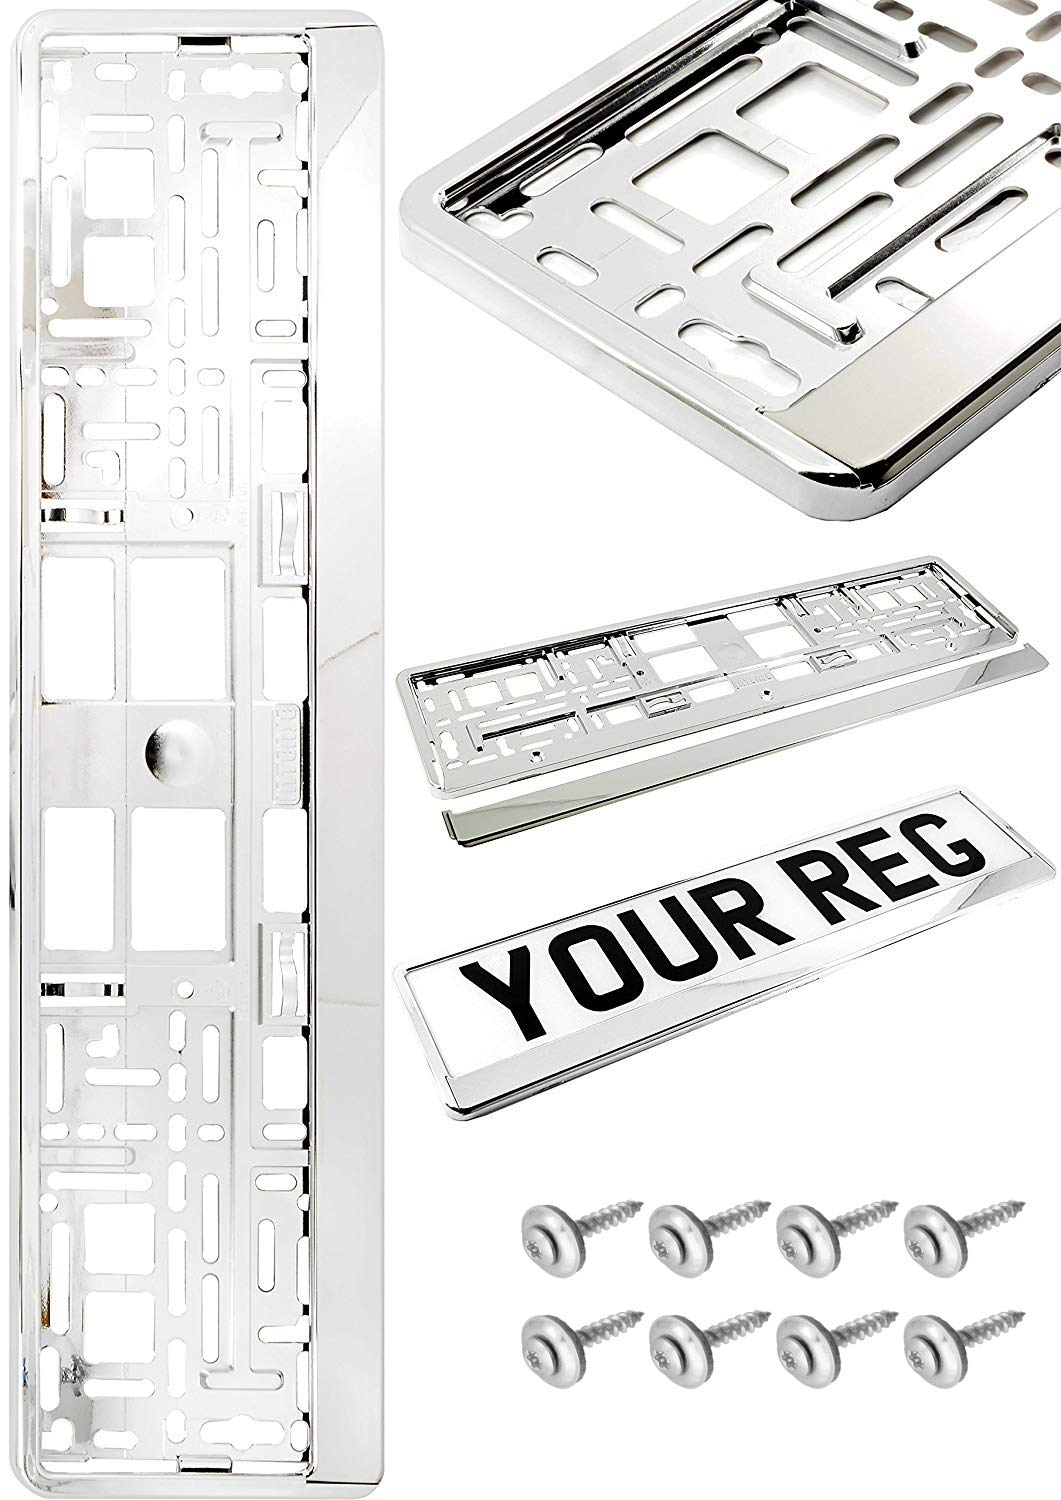 2x CHROME NUMBER PLATE SURROUND Holder with your desired text label Advertisements